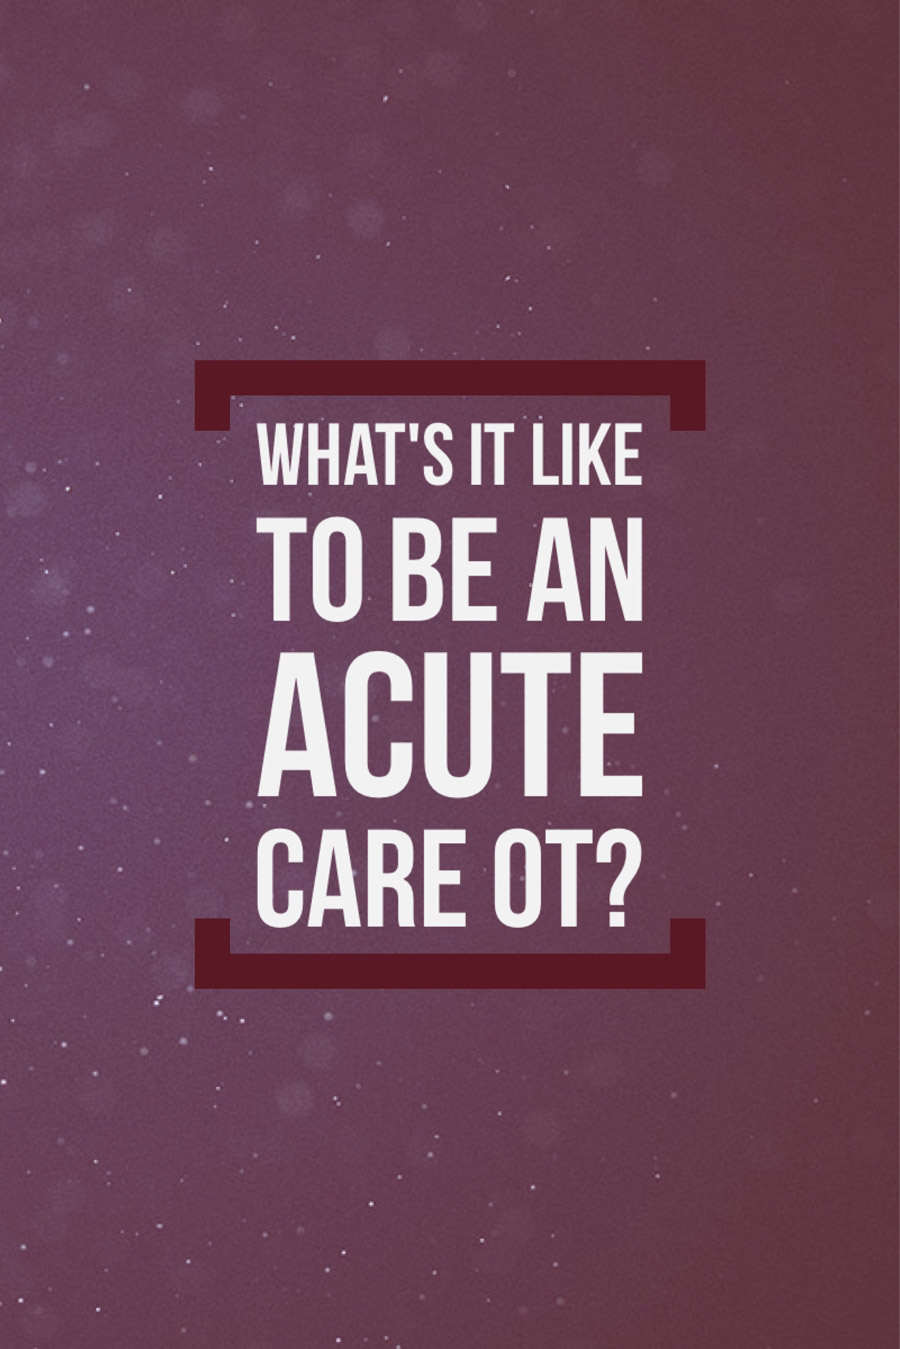 What is it like to be an acute care OT?